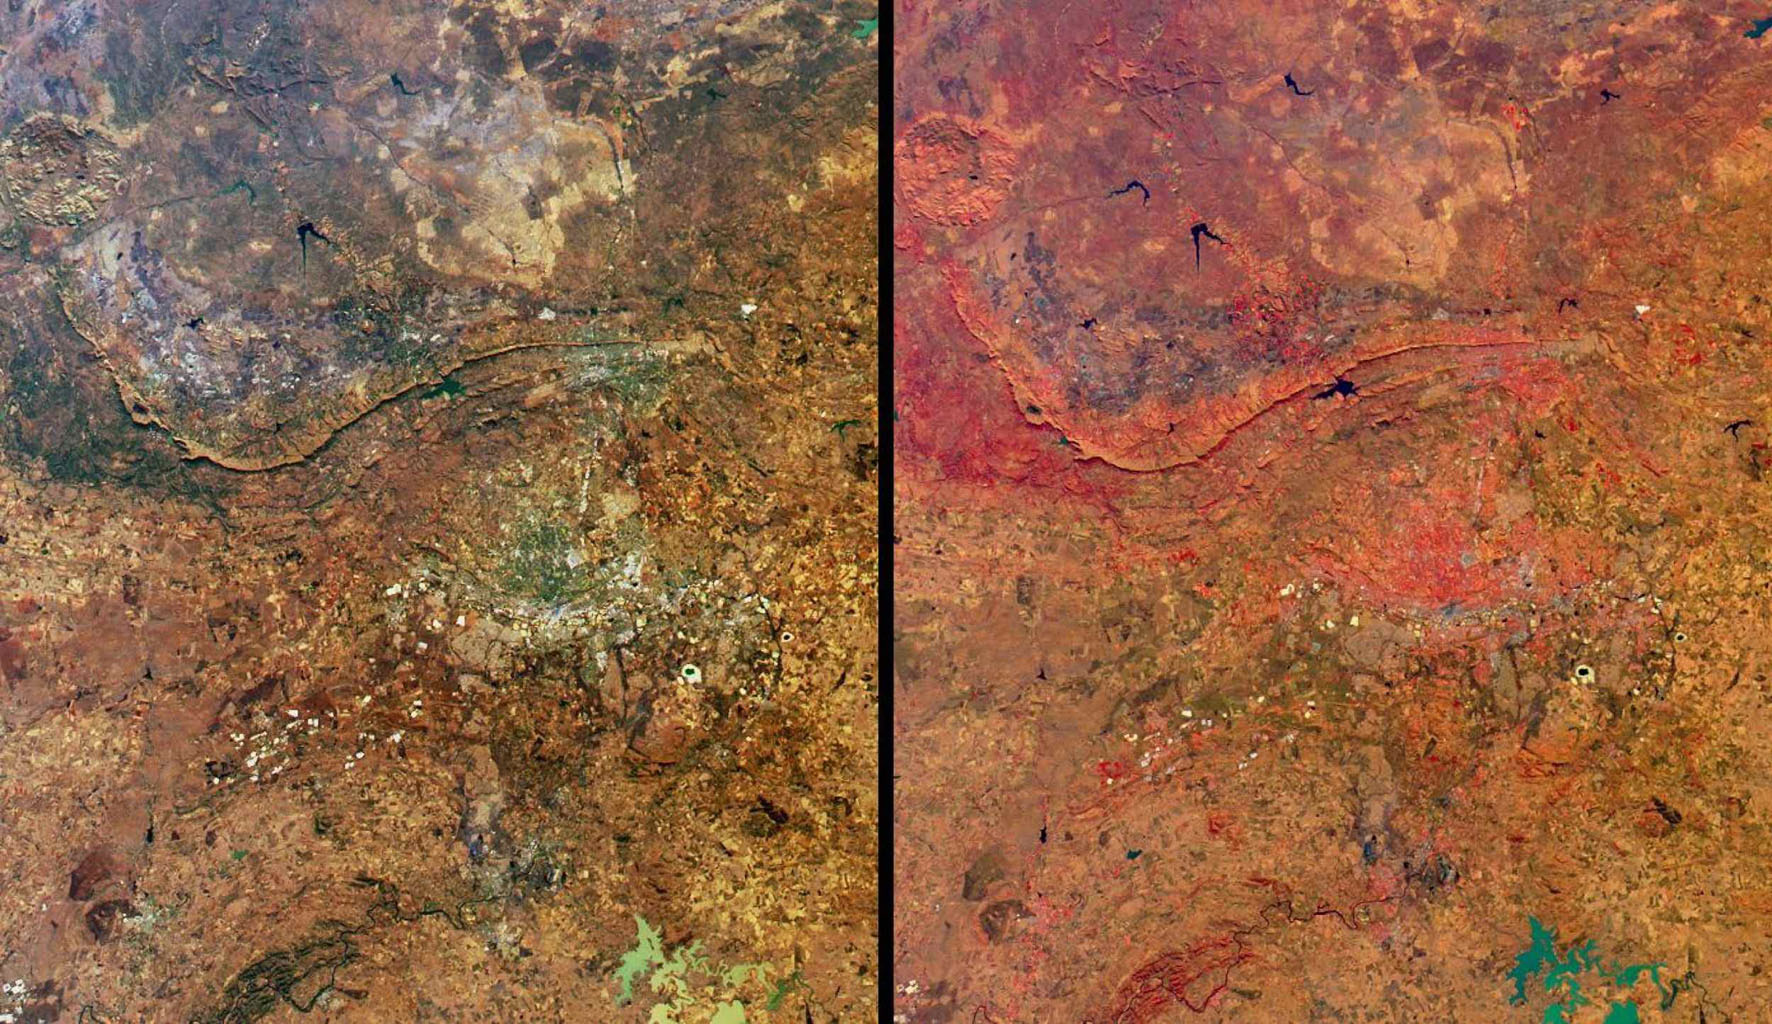 These views from NASA's Terra satellite highlight a number of the land use, vegetation, and geological features found Johannesburg, Gauteng Province, South Africa.